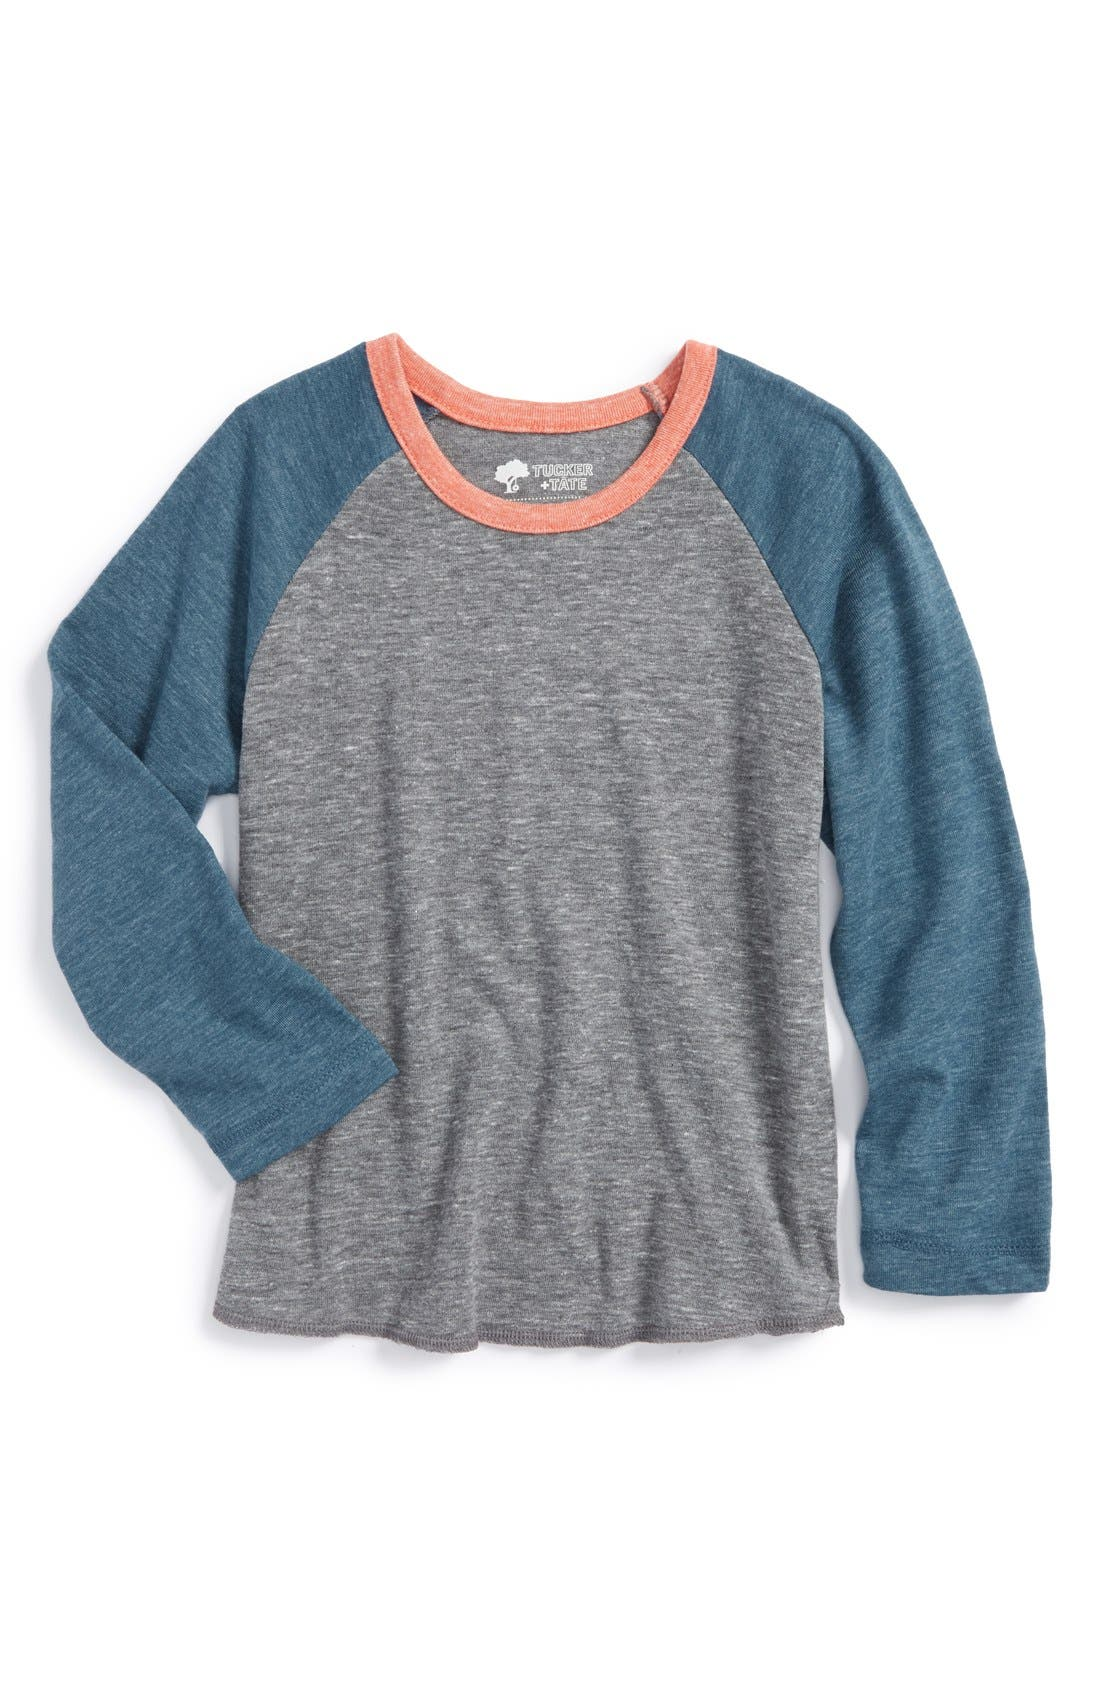 Alternate Image 1 Selected - Tucker + Tate 'Palmer' Long Sleeve Raglan T-Shirt (Toddler Boys)